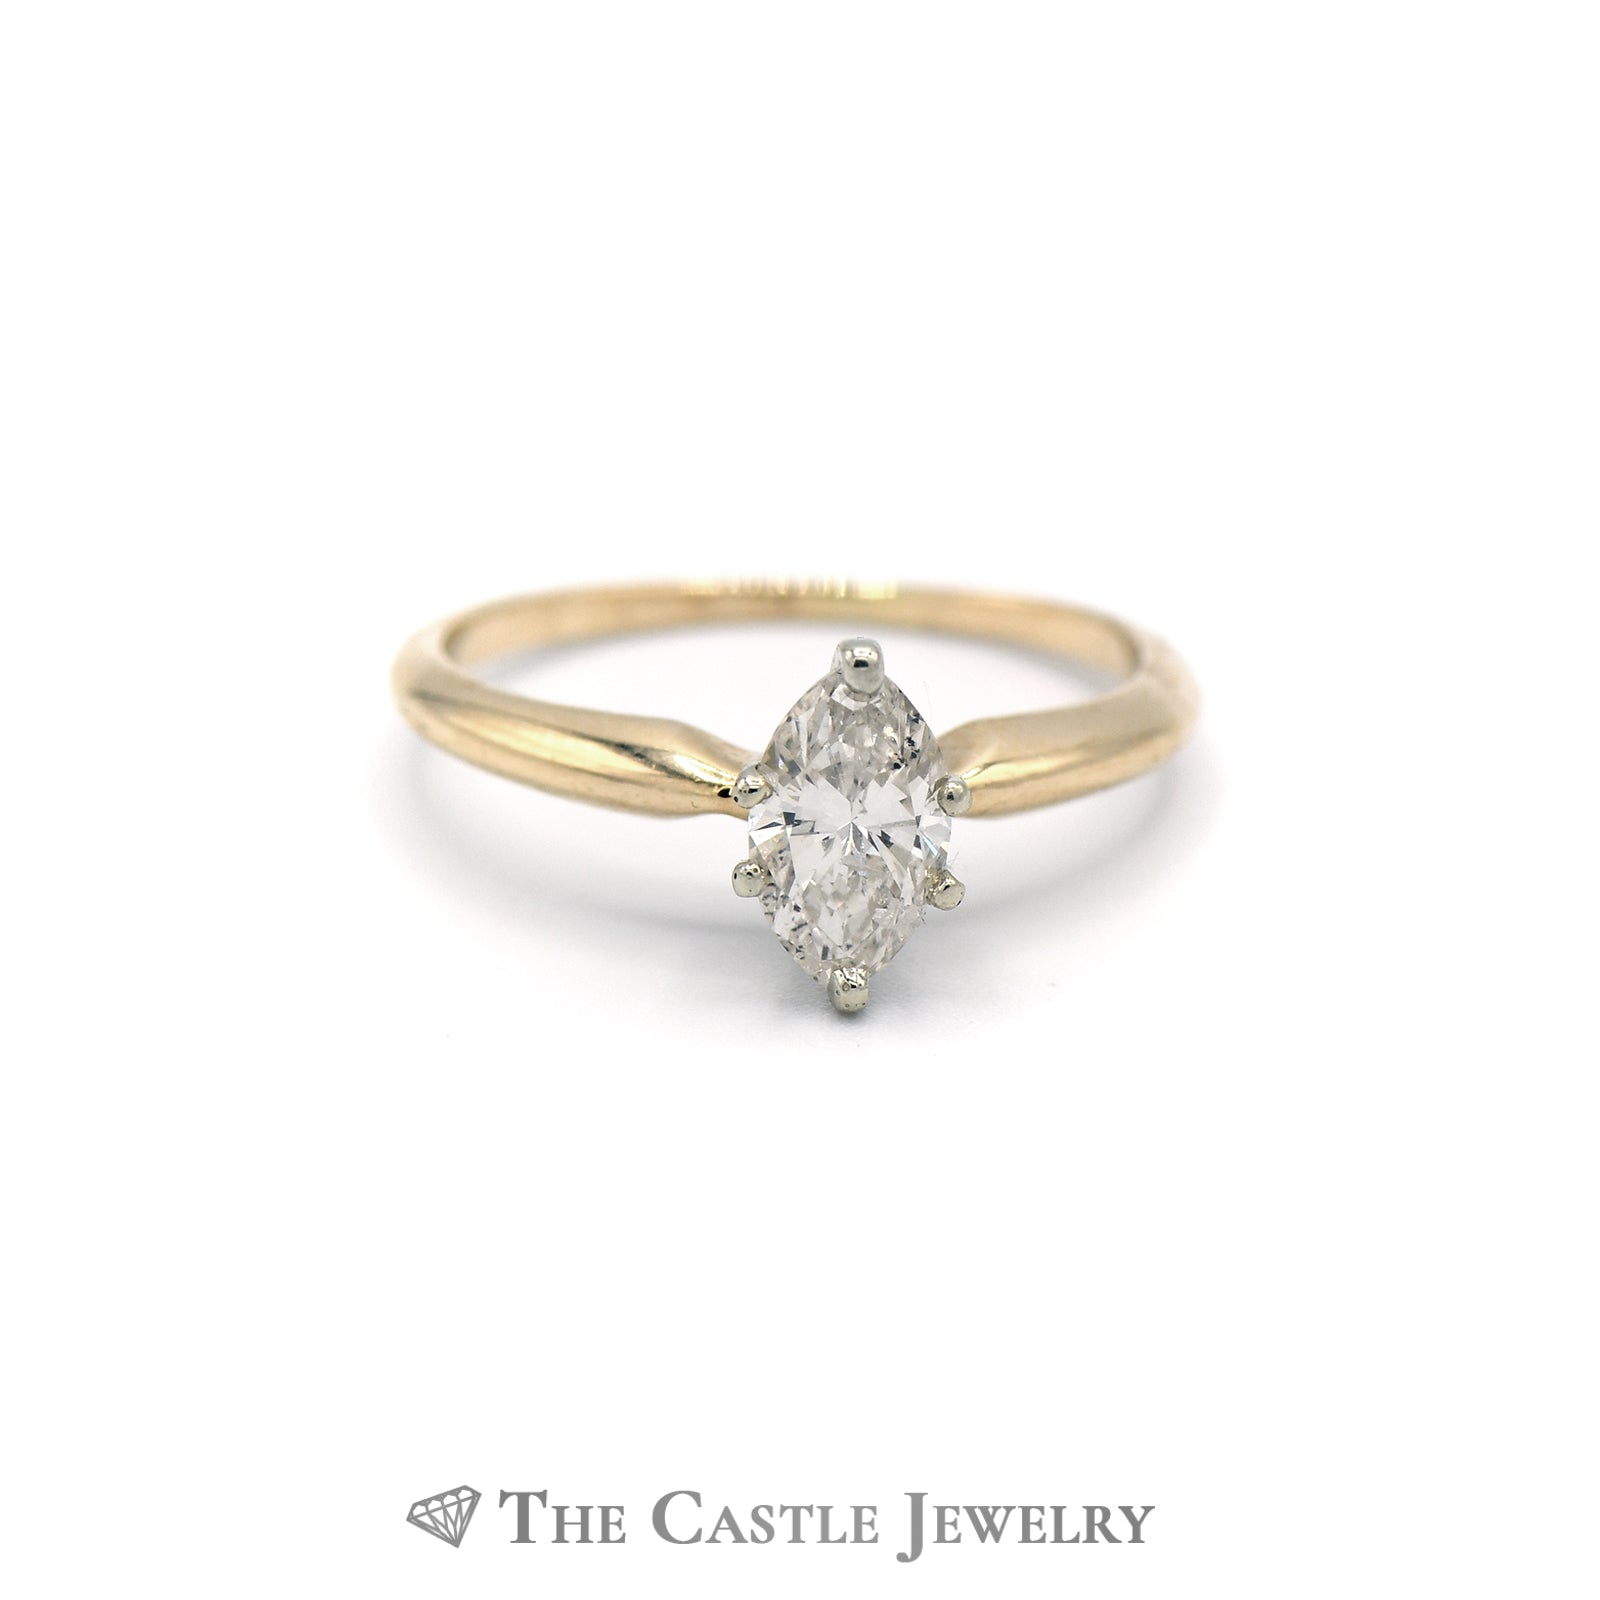 Marquise Solitaire 1/2 carat Diamond Ring in 14KT Yellow Gold